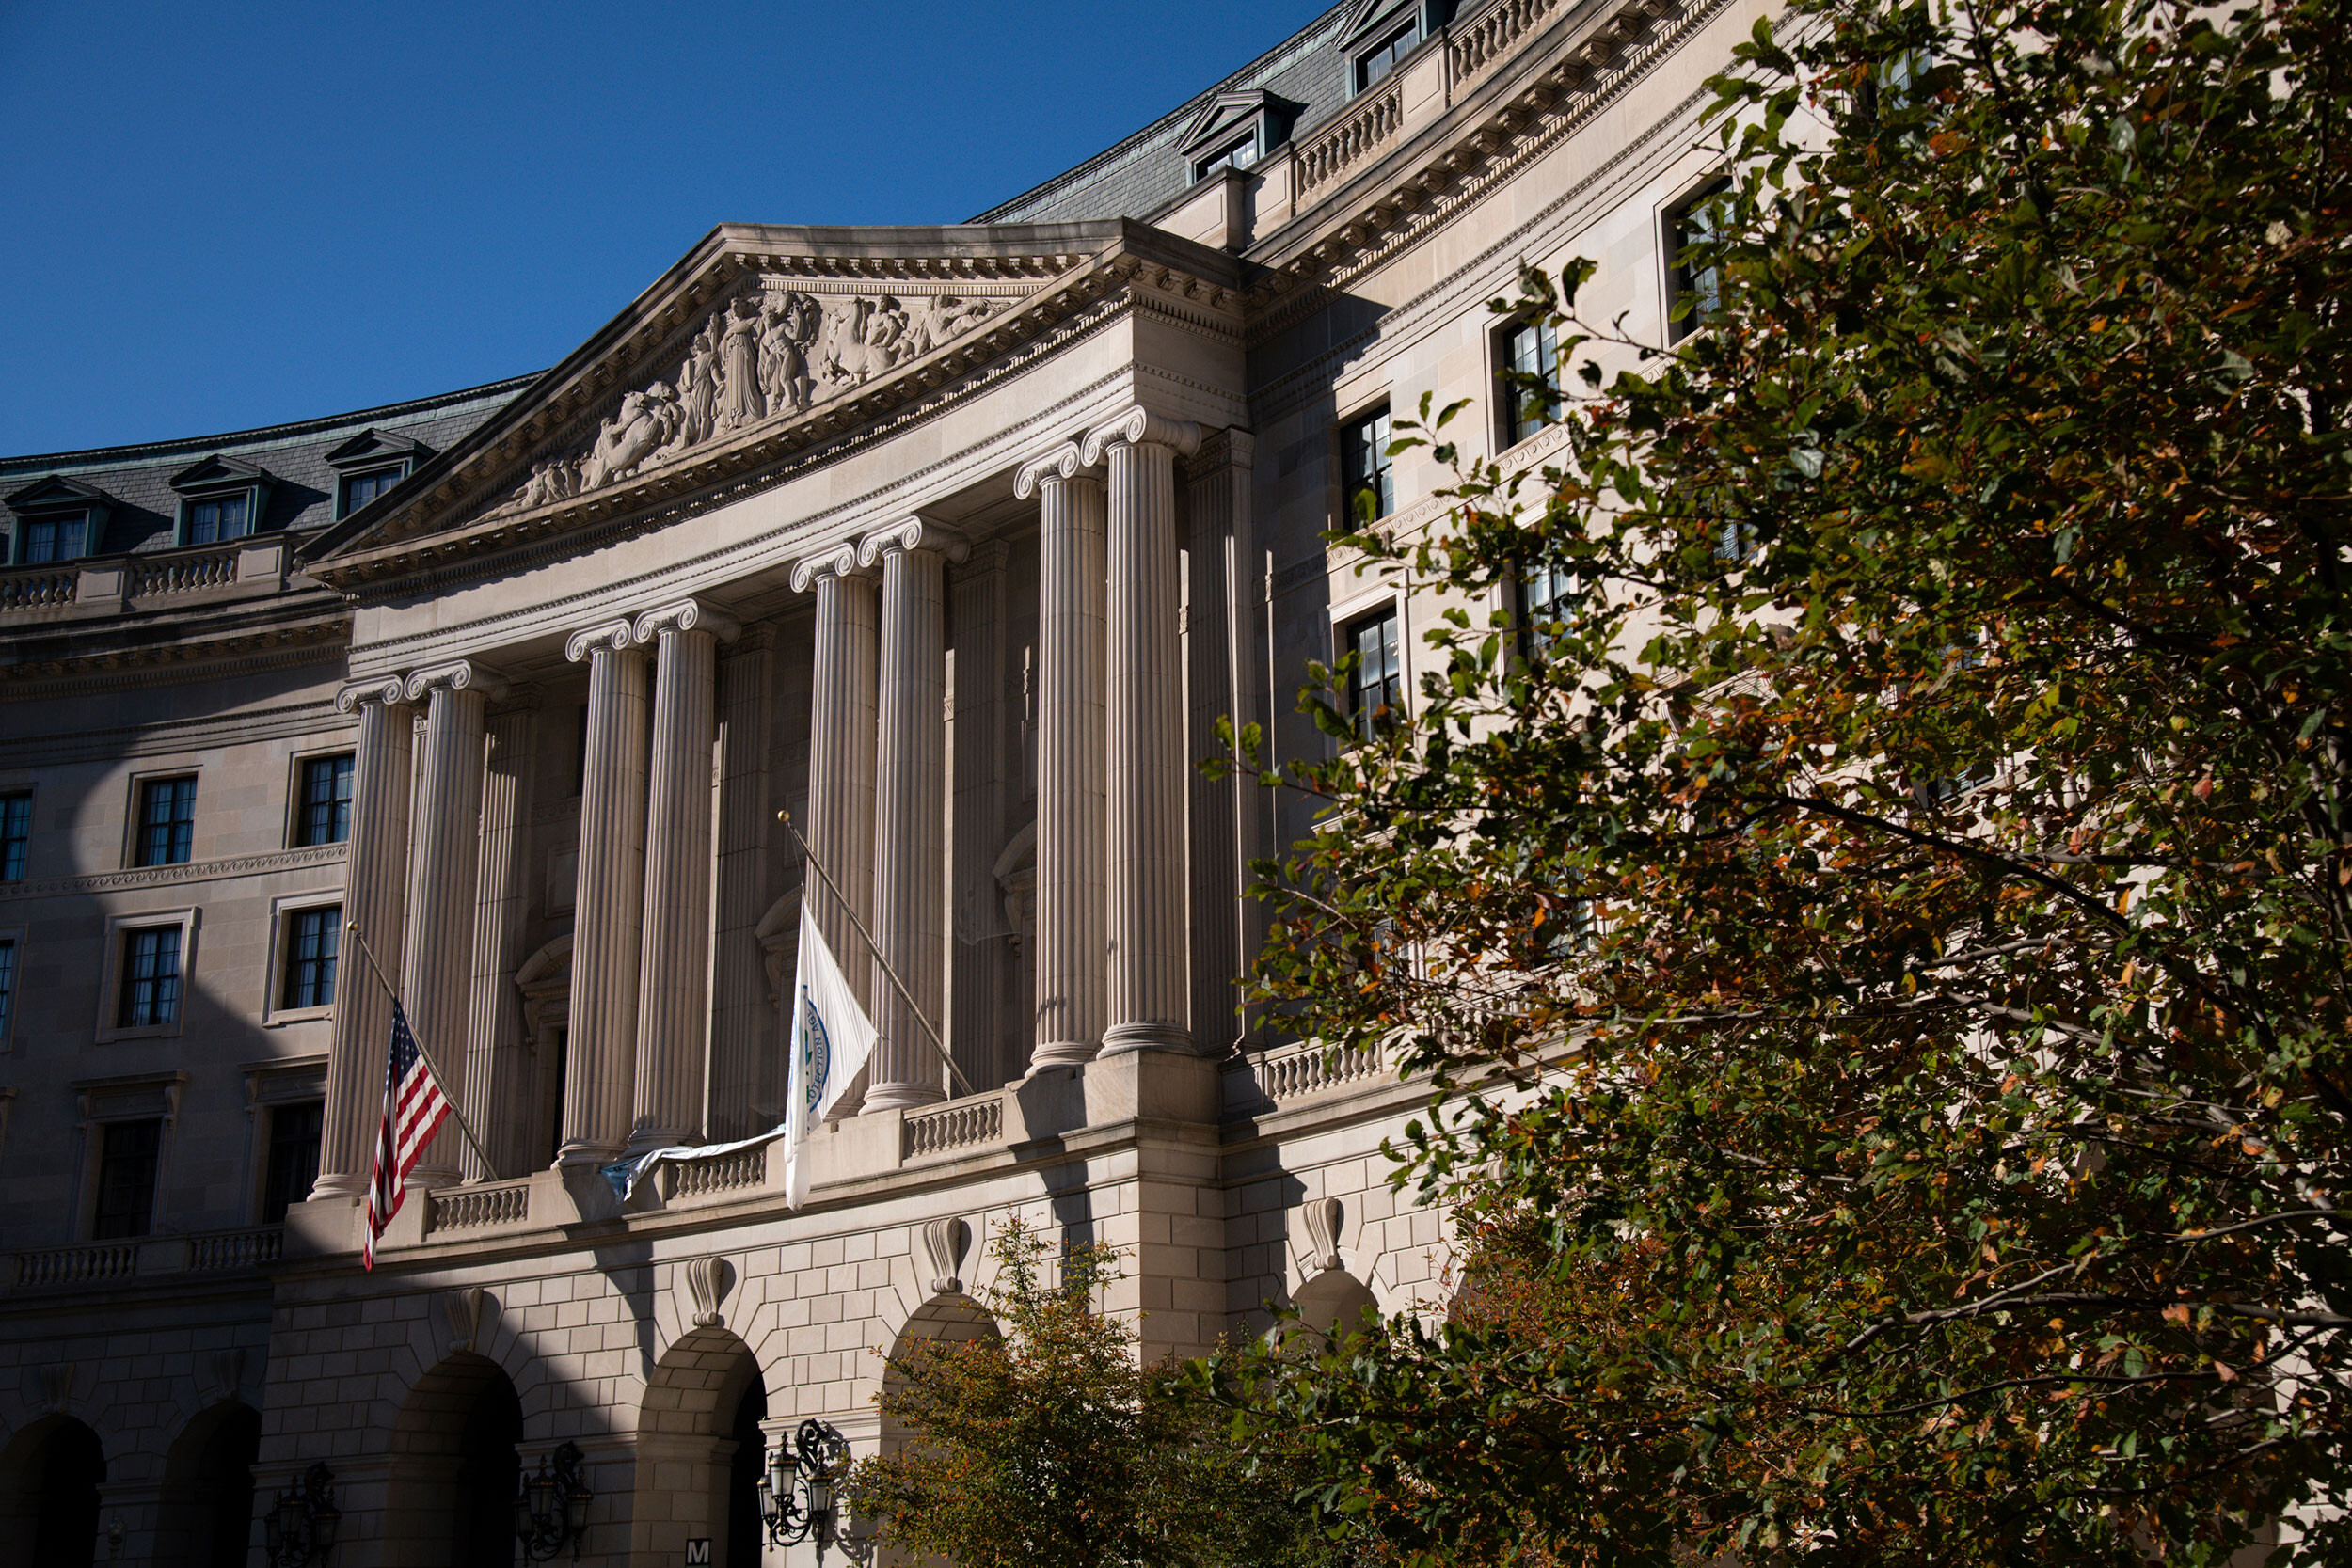 <i>Graeme Sloan/Sipa USA/AP</i><br/>A general view of the Environmental Protection Agency building in Washington